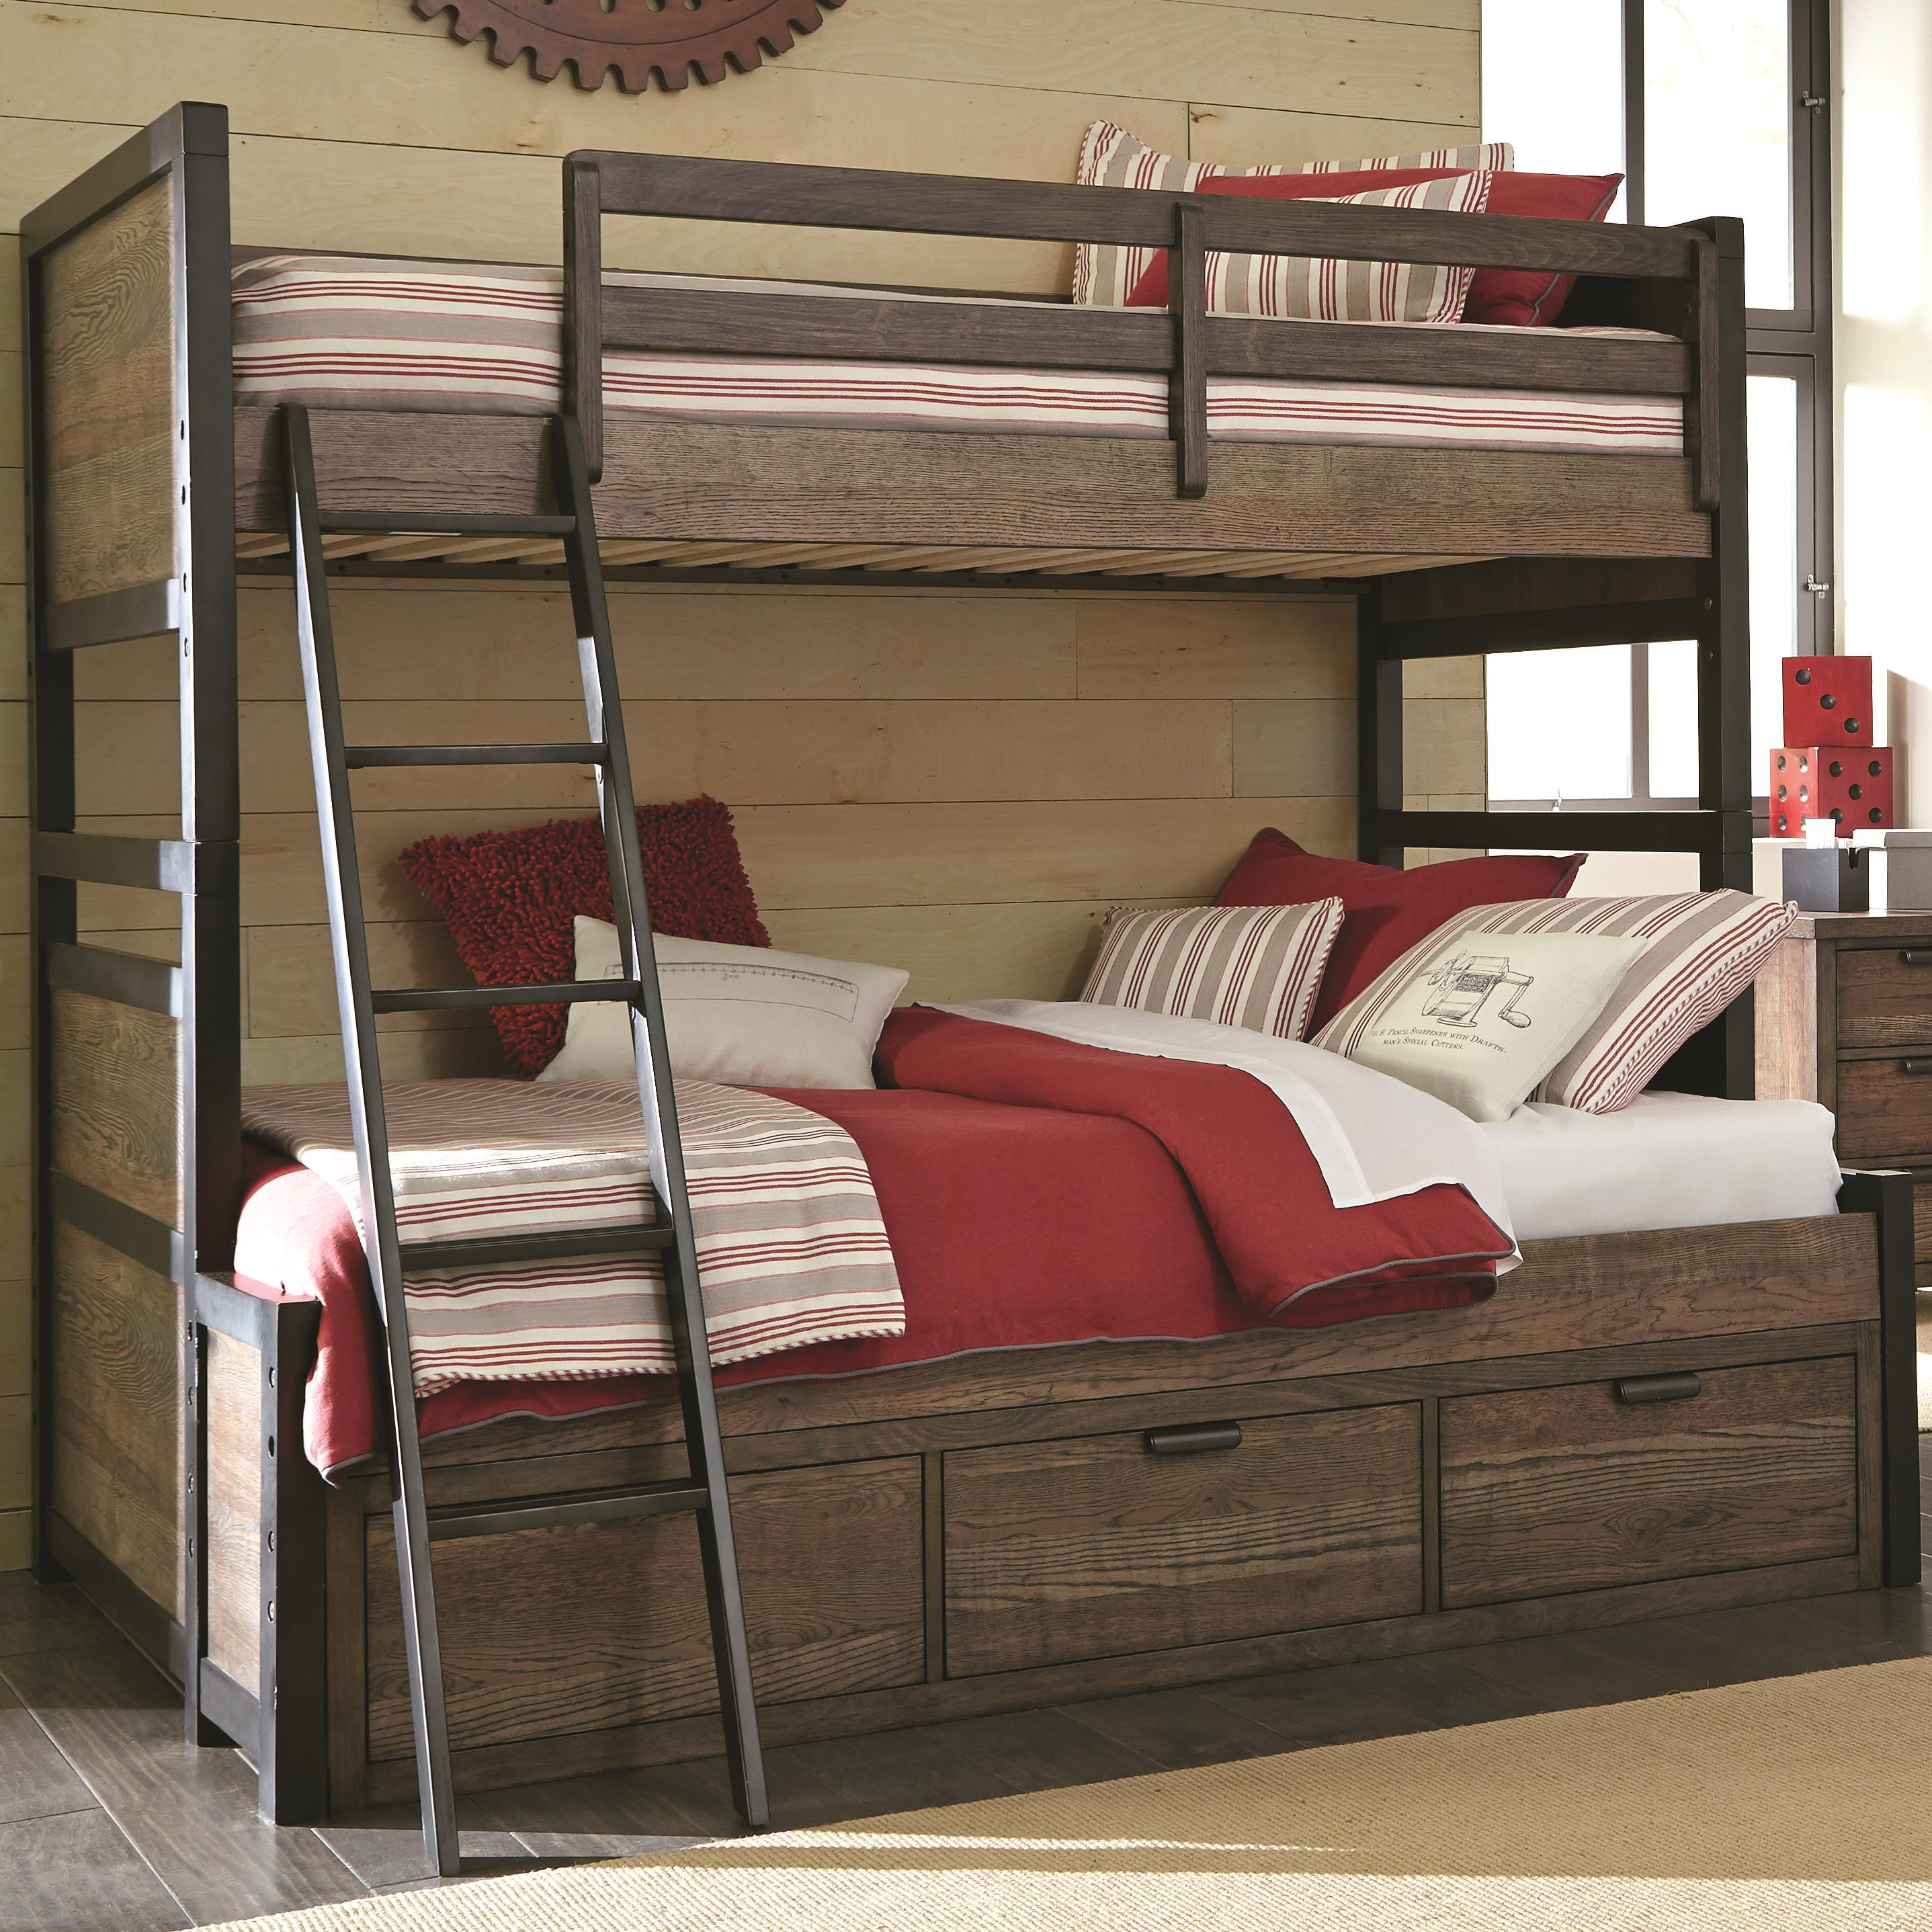 Double Over Double Bunk Beds With Storage Novocom Top